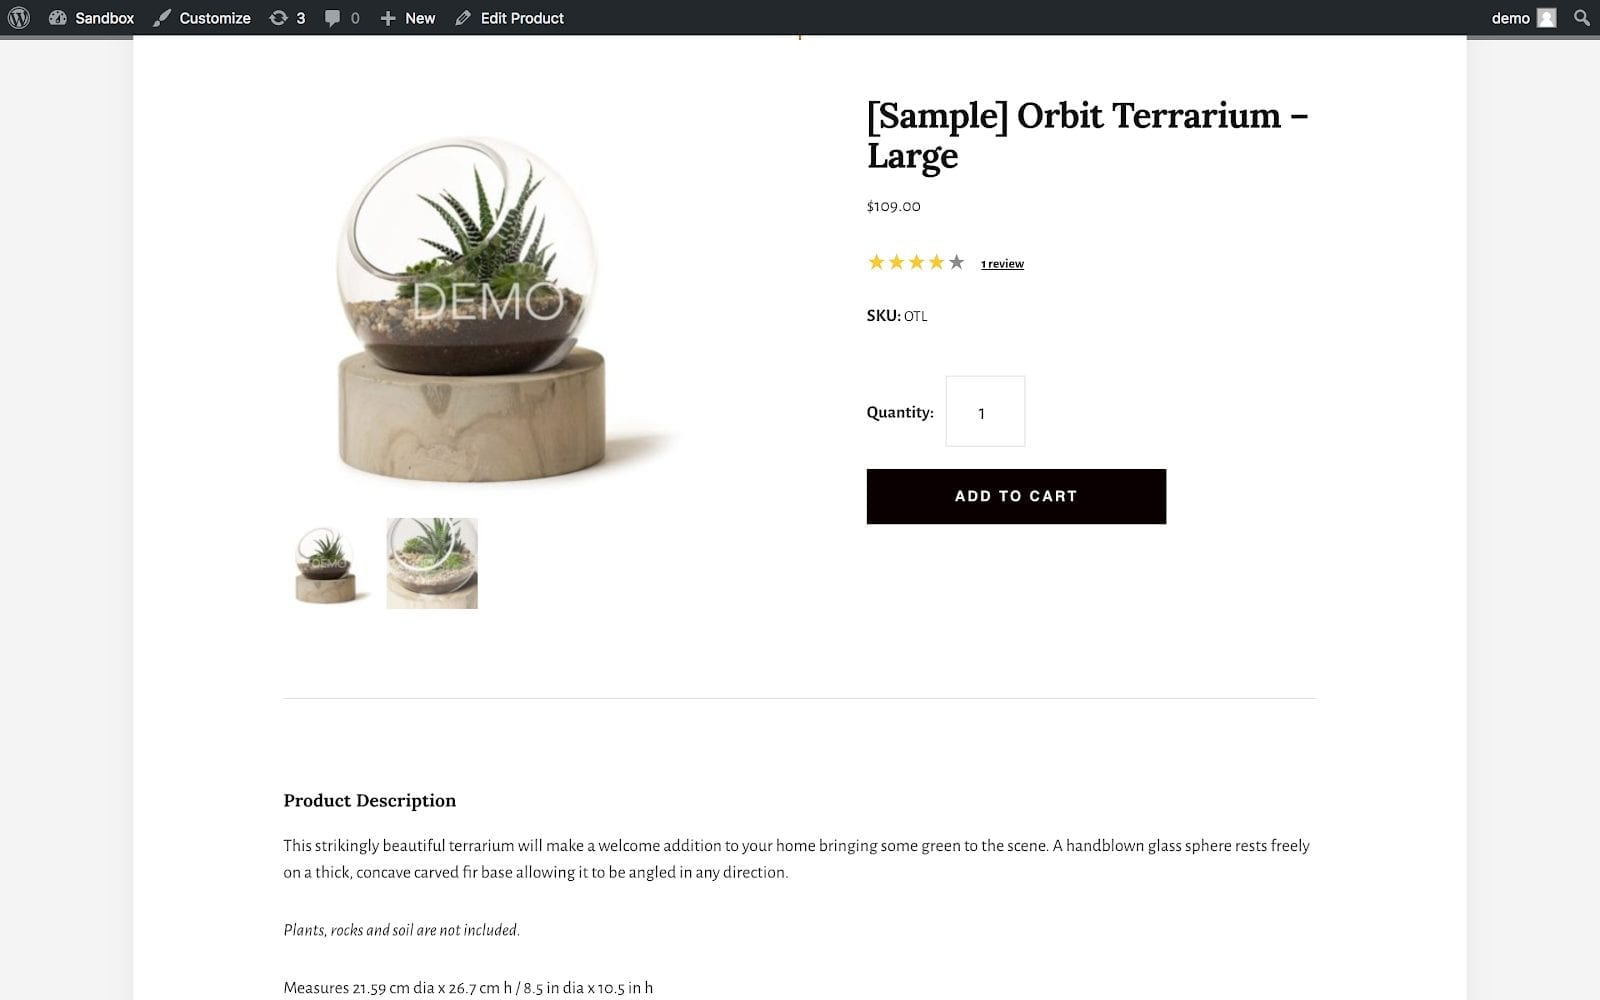 BigCommerce Product Description within WordPress